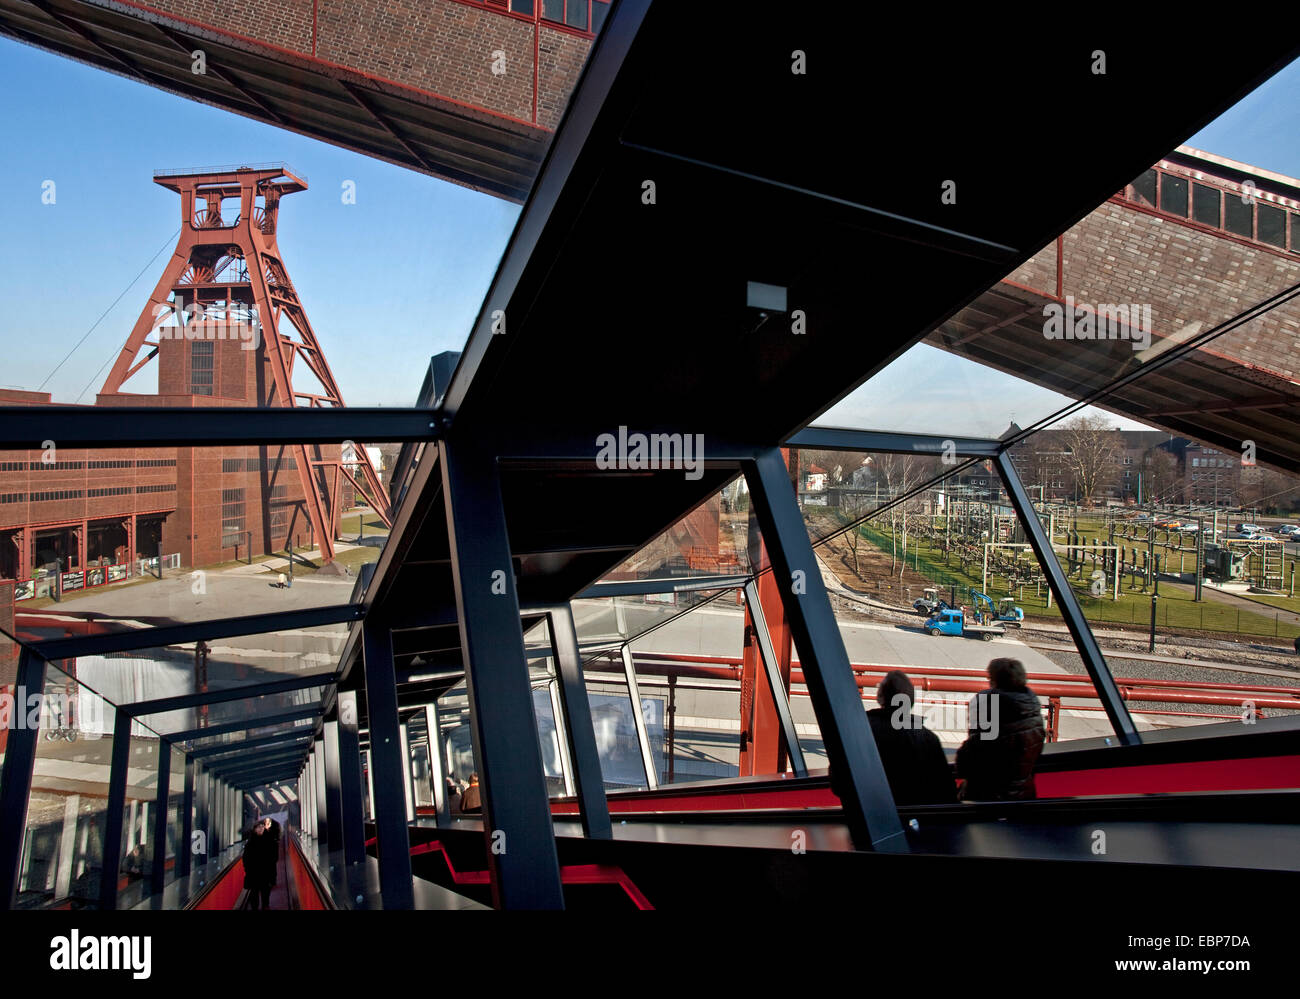 visitors on gangway of Zollverein Coal Mine Industrial Complex, Germany, North Rhine-Westphalia, Ruhr Area, Essen - Stock Image